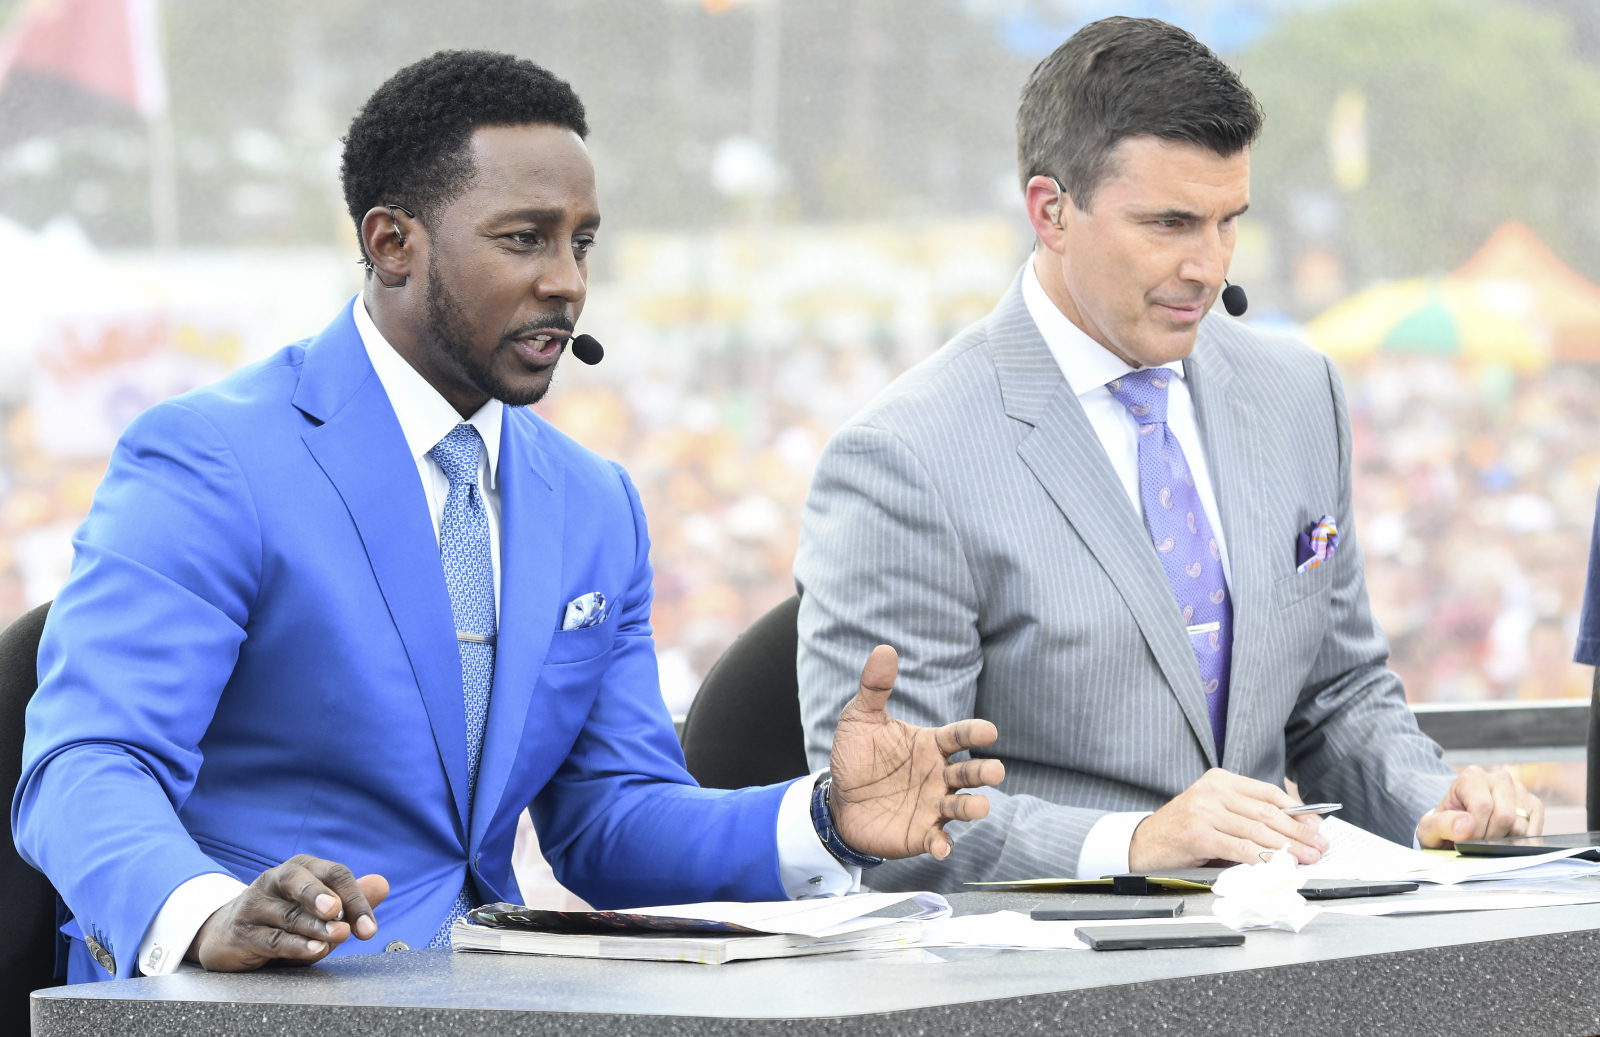 Desmond Howard was a pretty good football player, and is now a successful analyst on ESPN's College GameDay. What is his net worth?